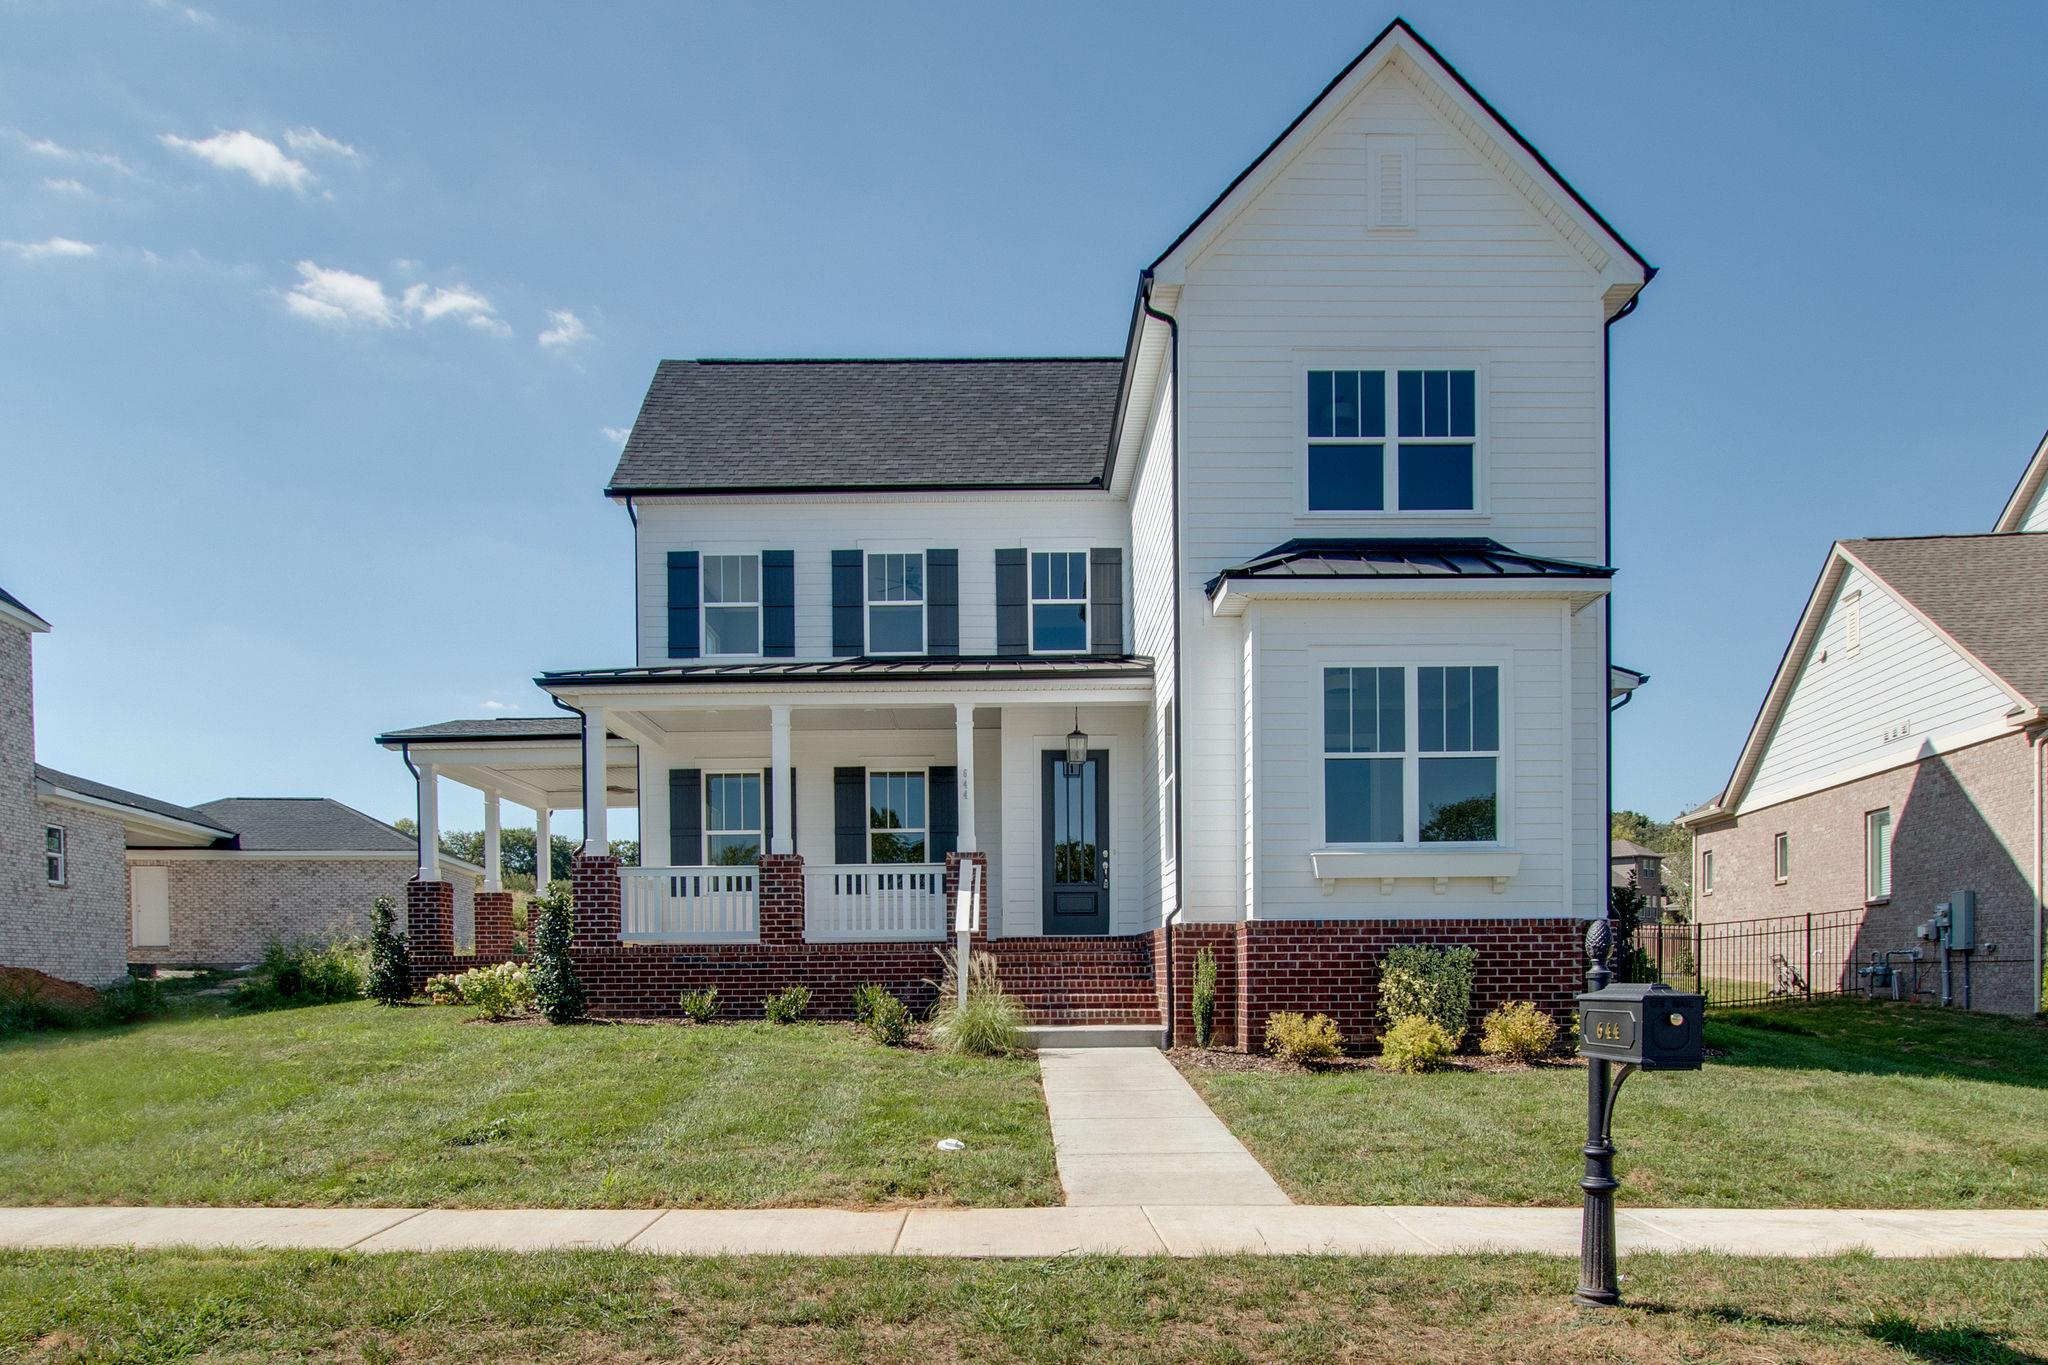 644 Vickery Park Dr, Nolensville in Williamson County County, TN 37135 Home for Sale